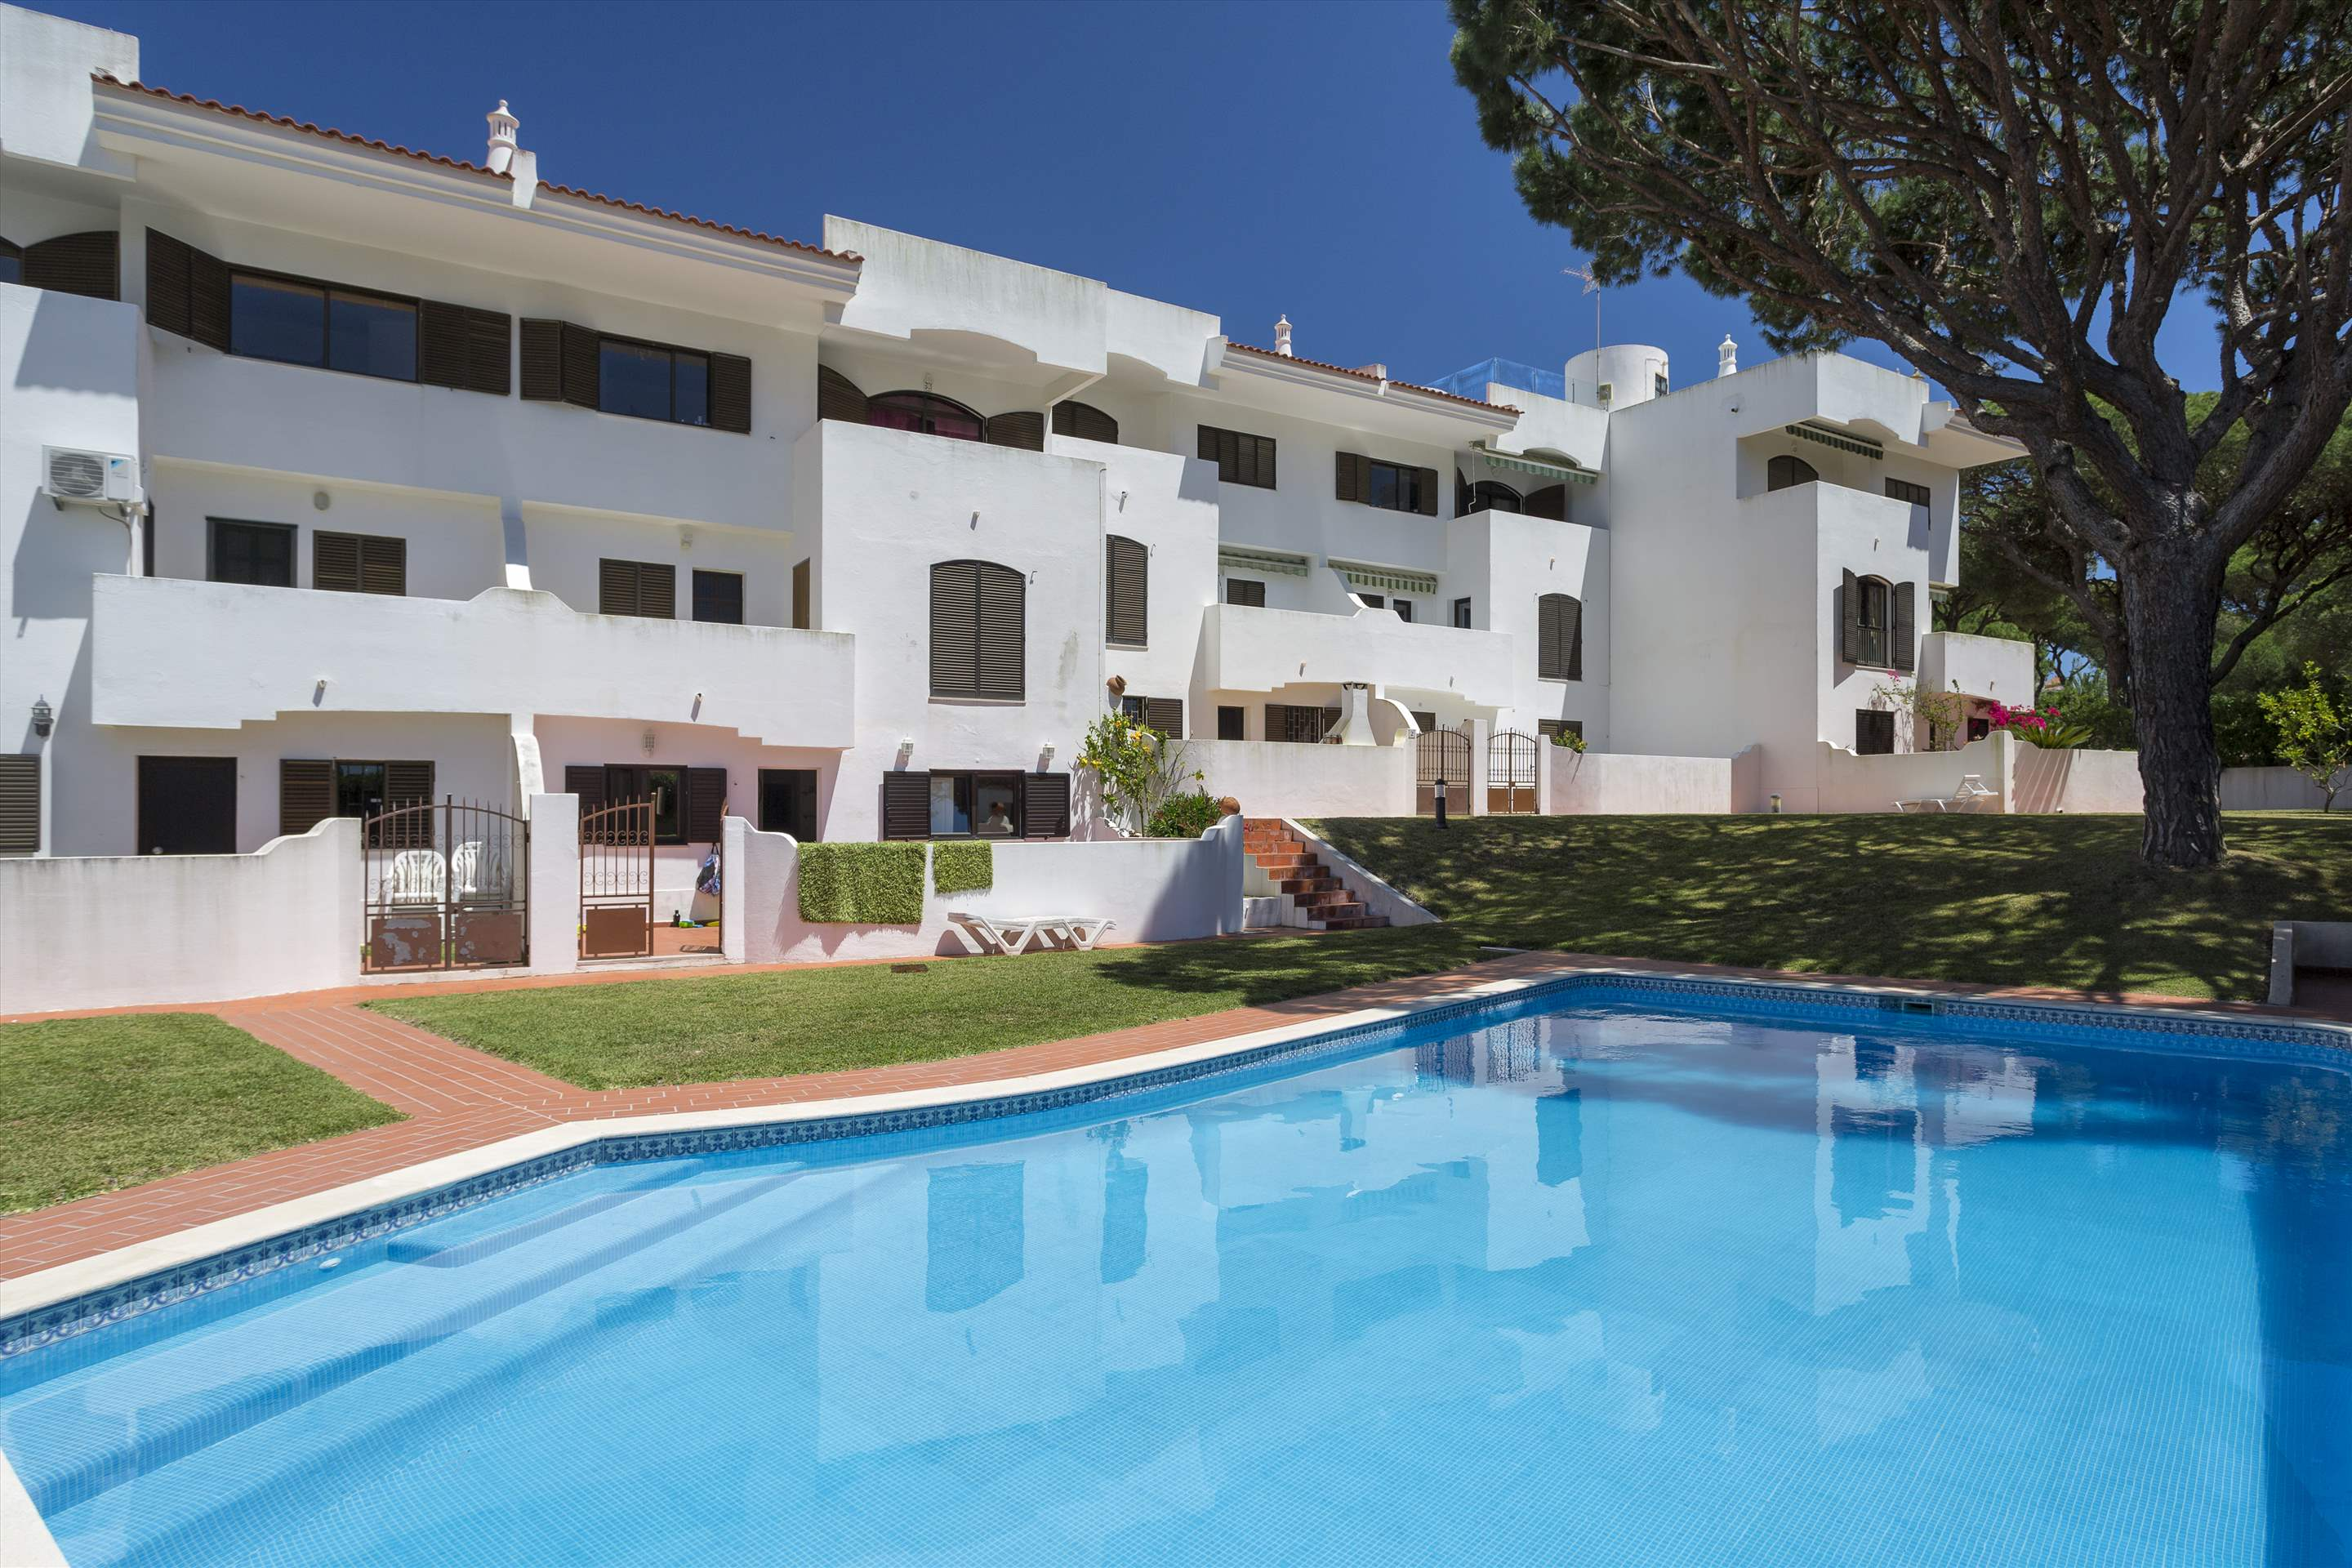 Apartment Jardim do Mar, 2 bedroom apartment in Vilamoura Area, Algarve